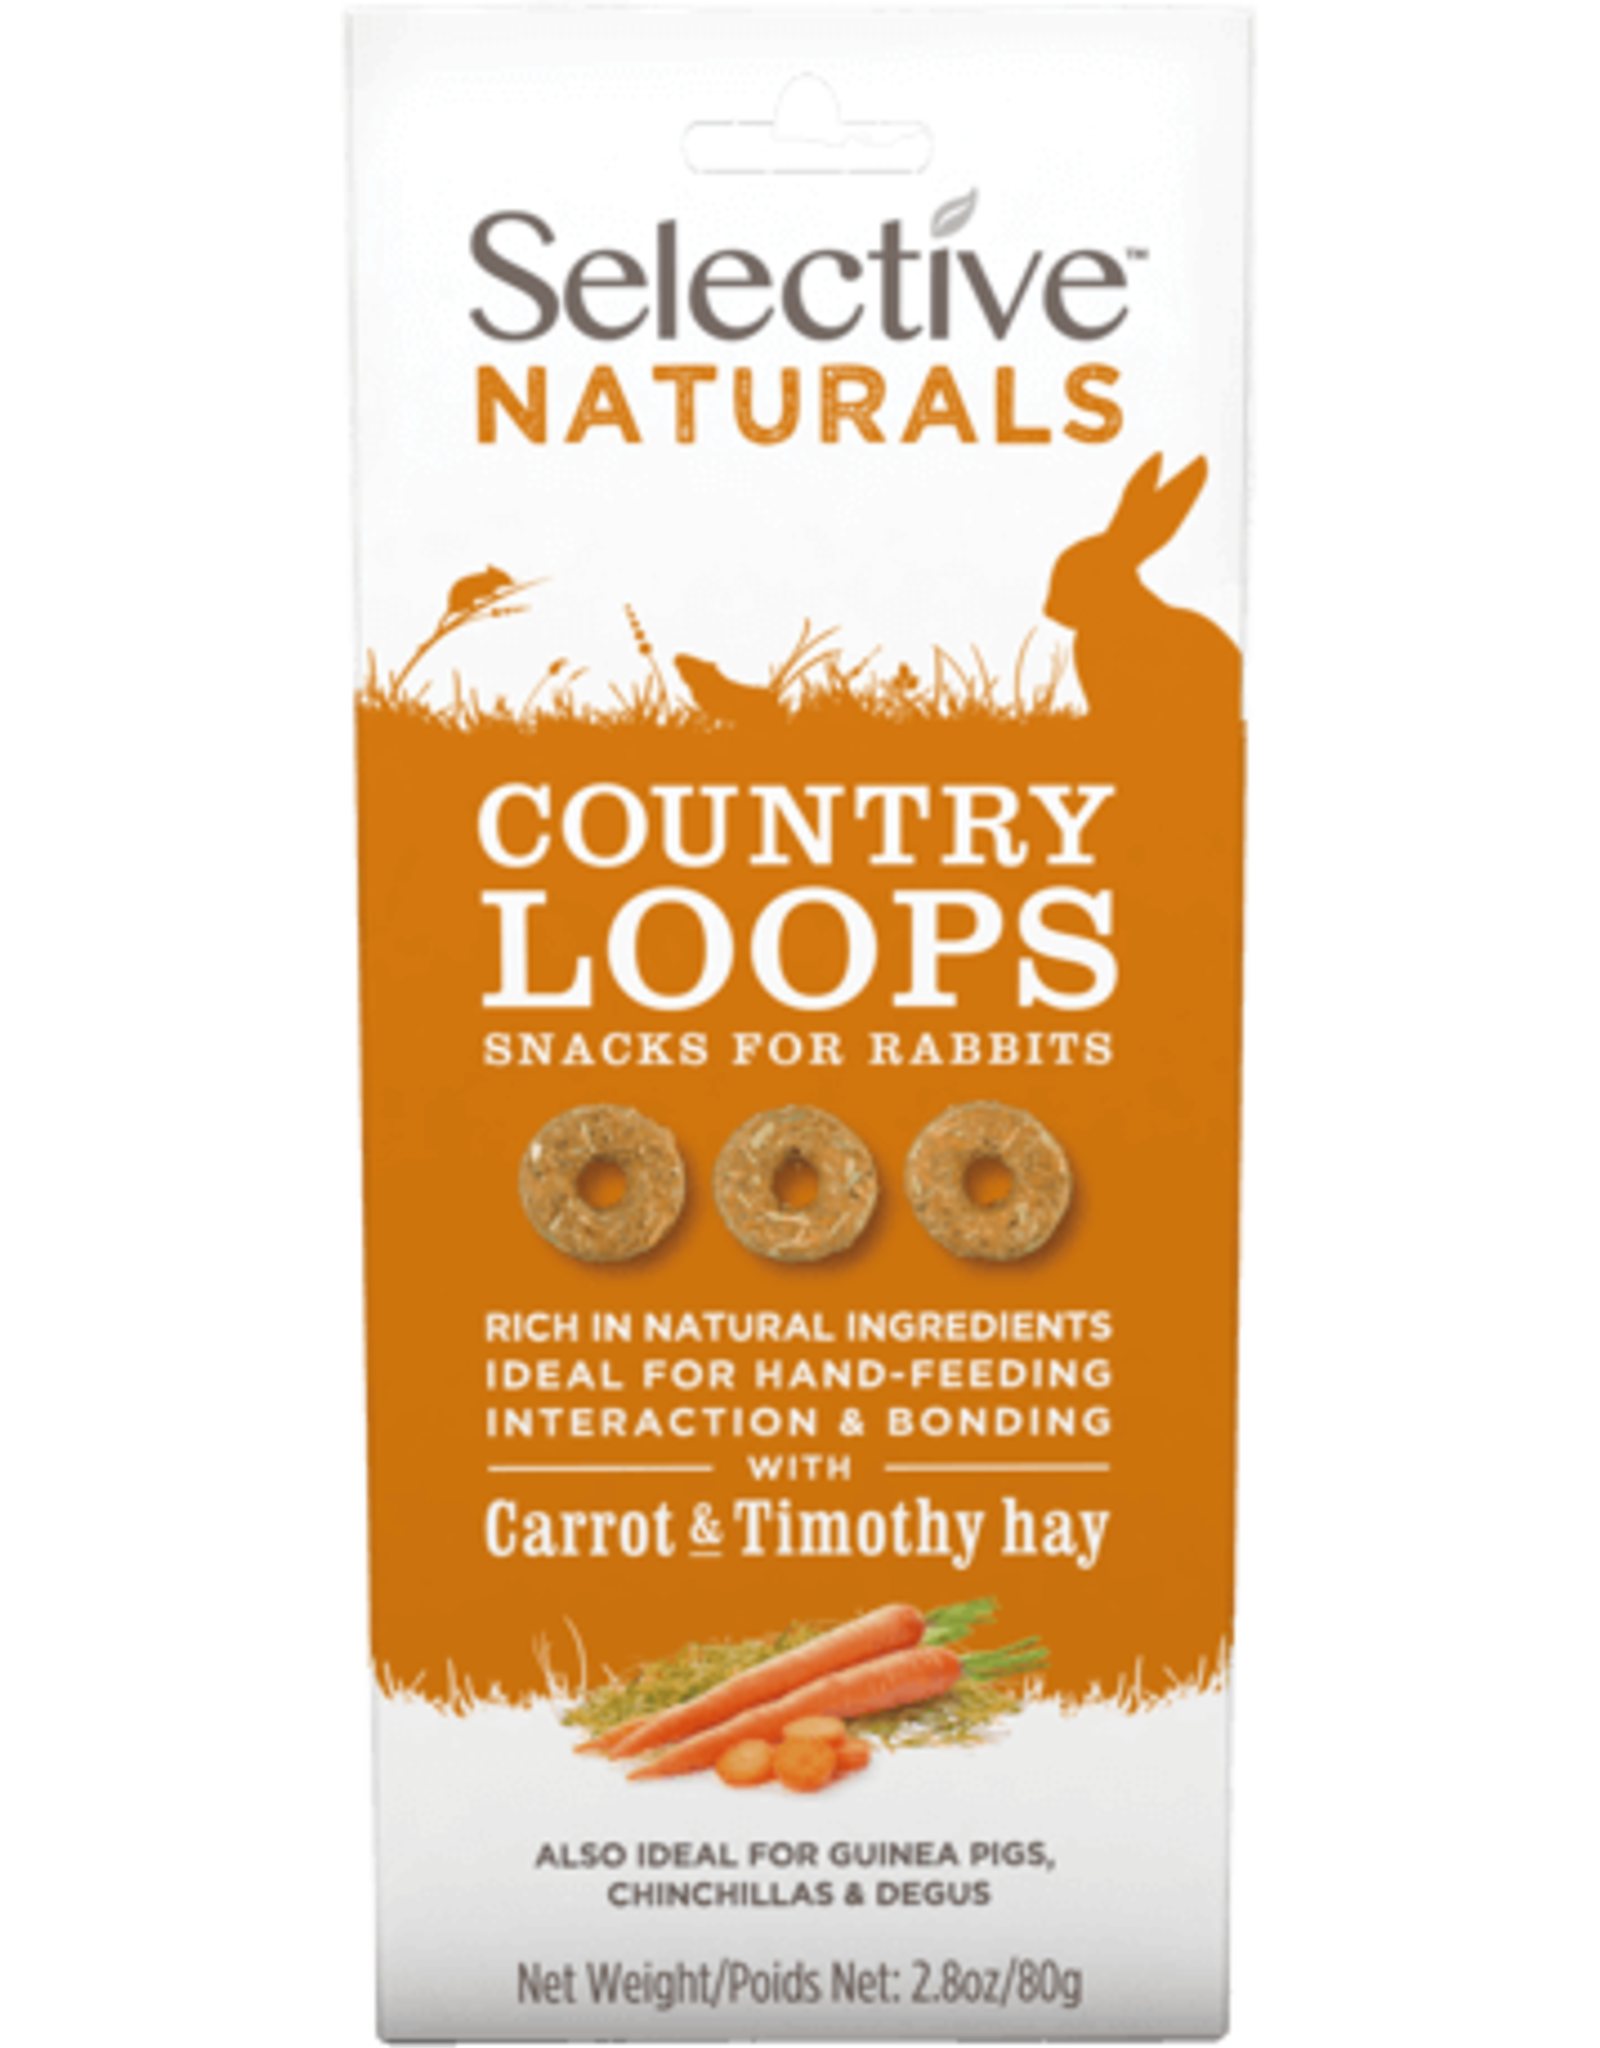 Supreme Pet Foods SELECTIVE NATURALS Country Loops Rabbit Treats Carrot & Timmothy Hay